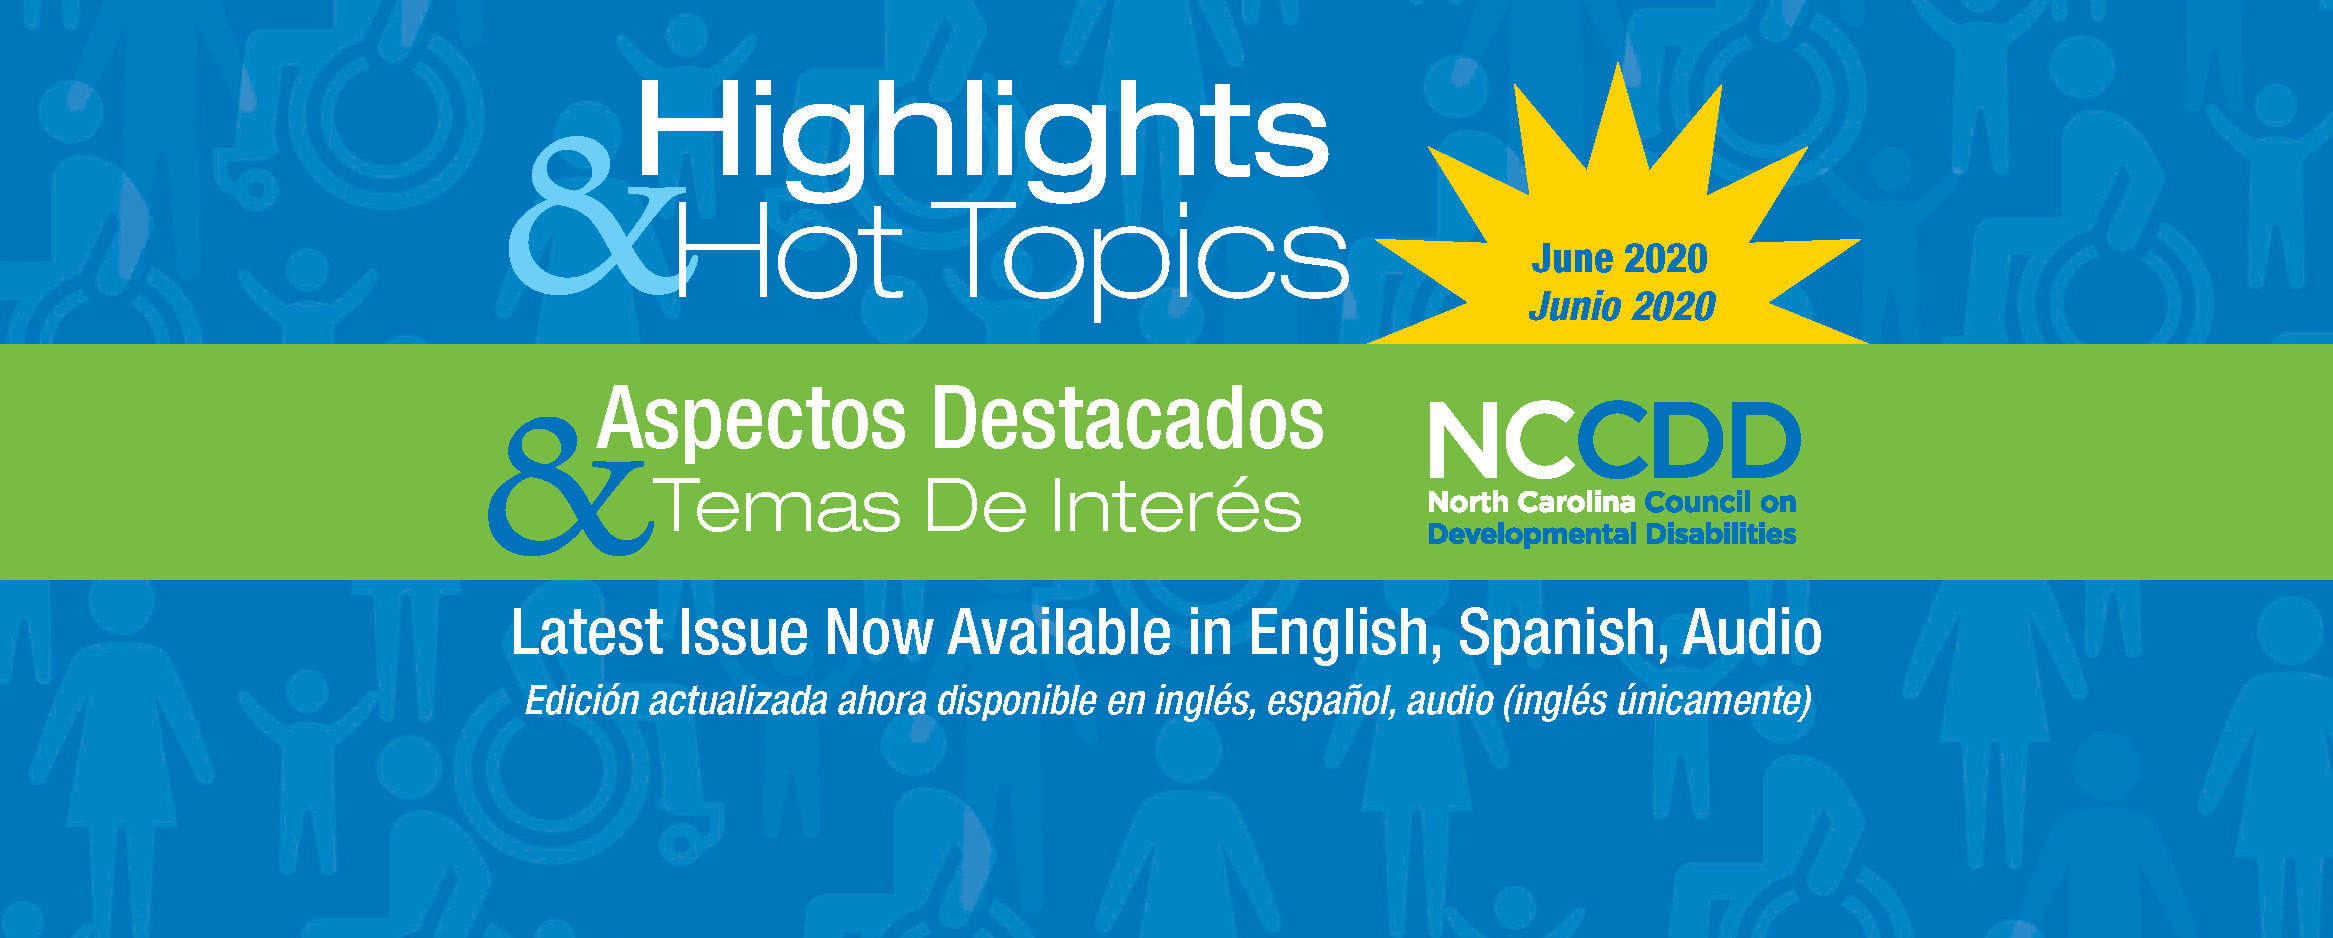 Highlights & Hot Topics! Latest Issue Now Available in English, Spanish, Audio, Edición actualizada ahora disponible en inglés, español, audio (inglés únicamente)